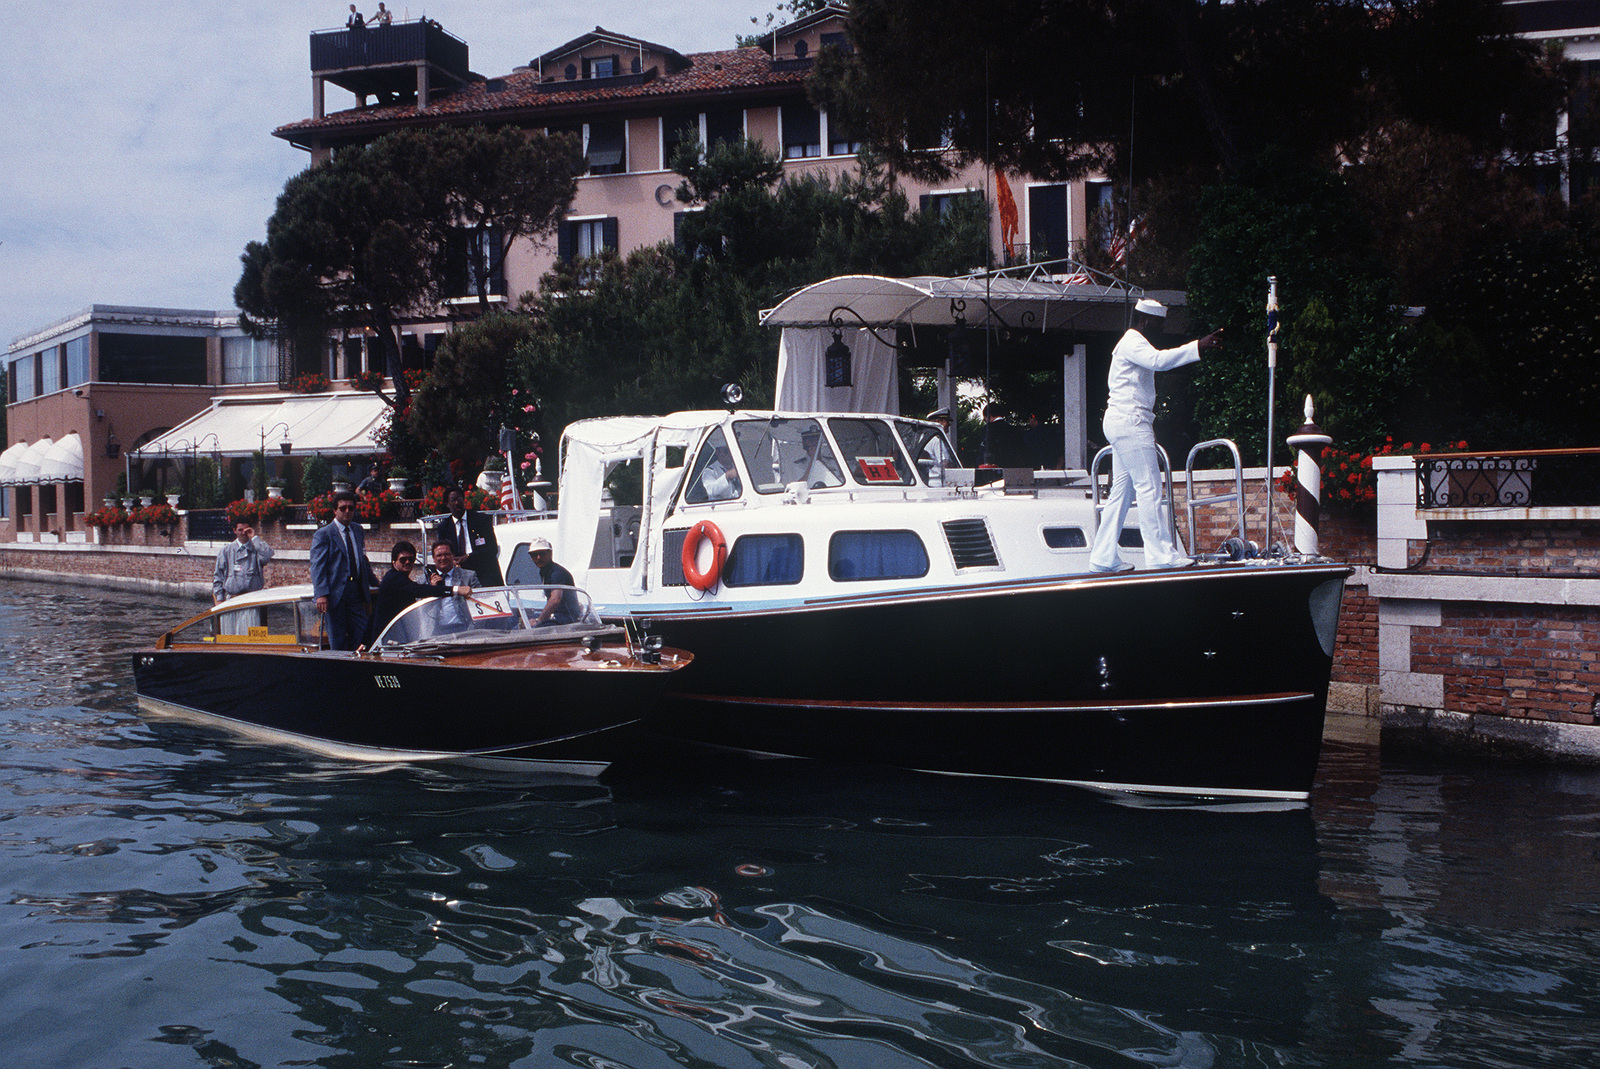 an italian water taxi and a us navy barge provide security for